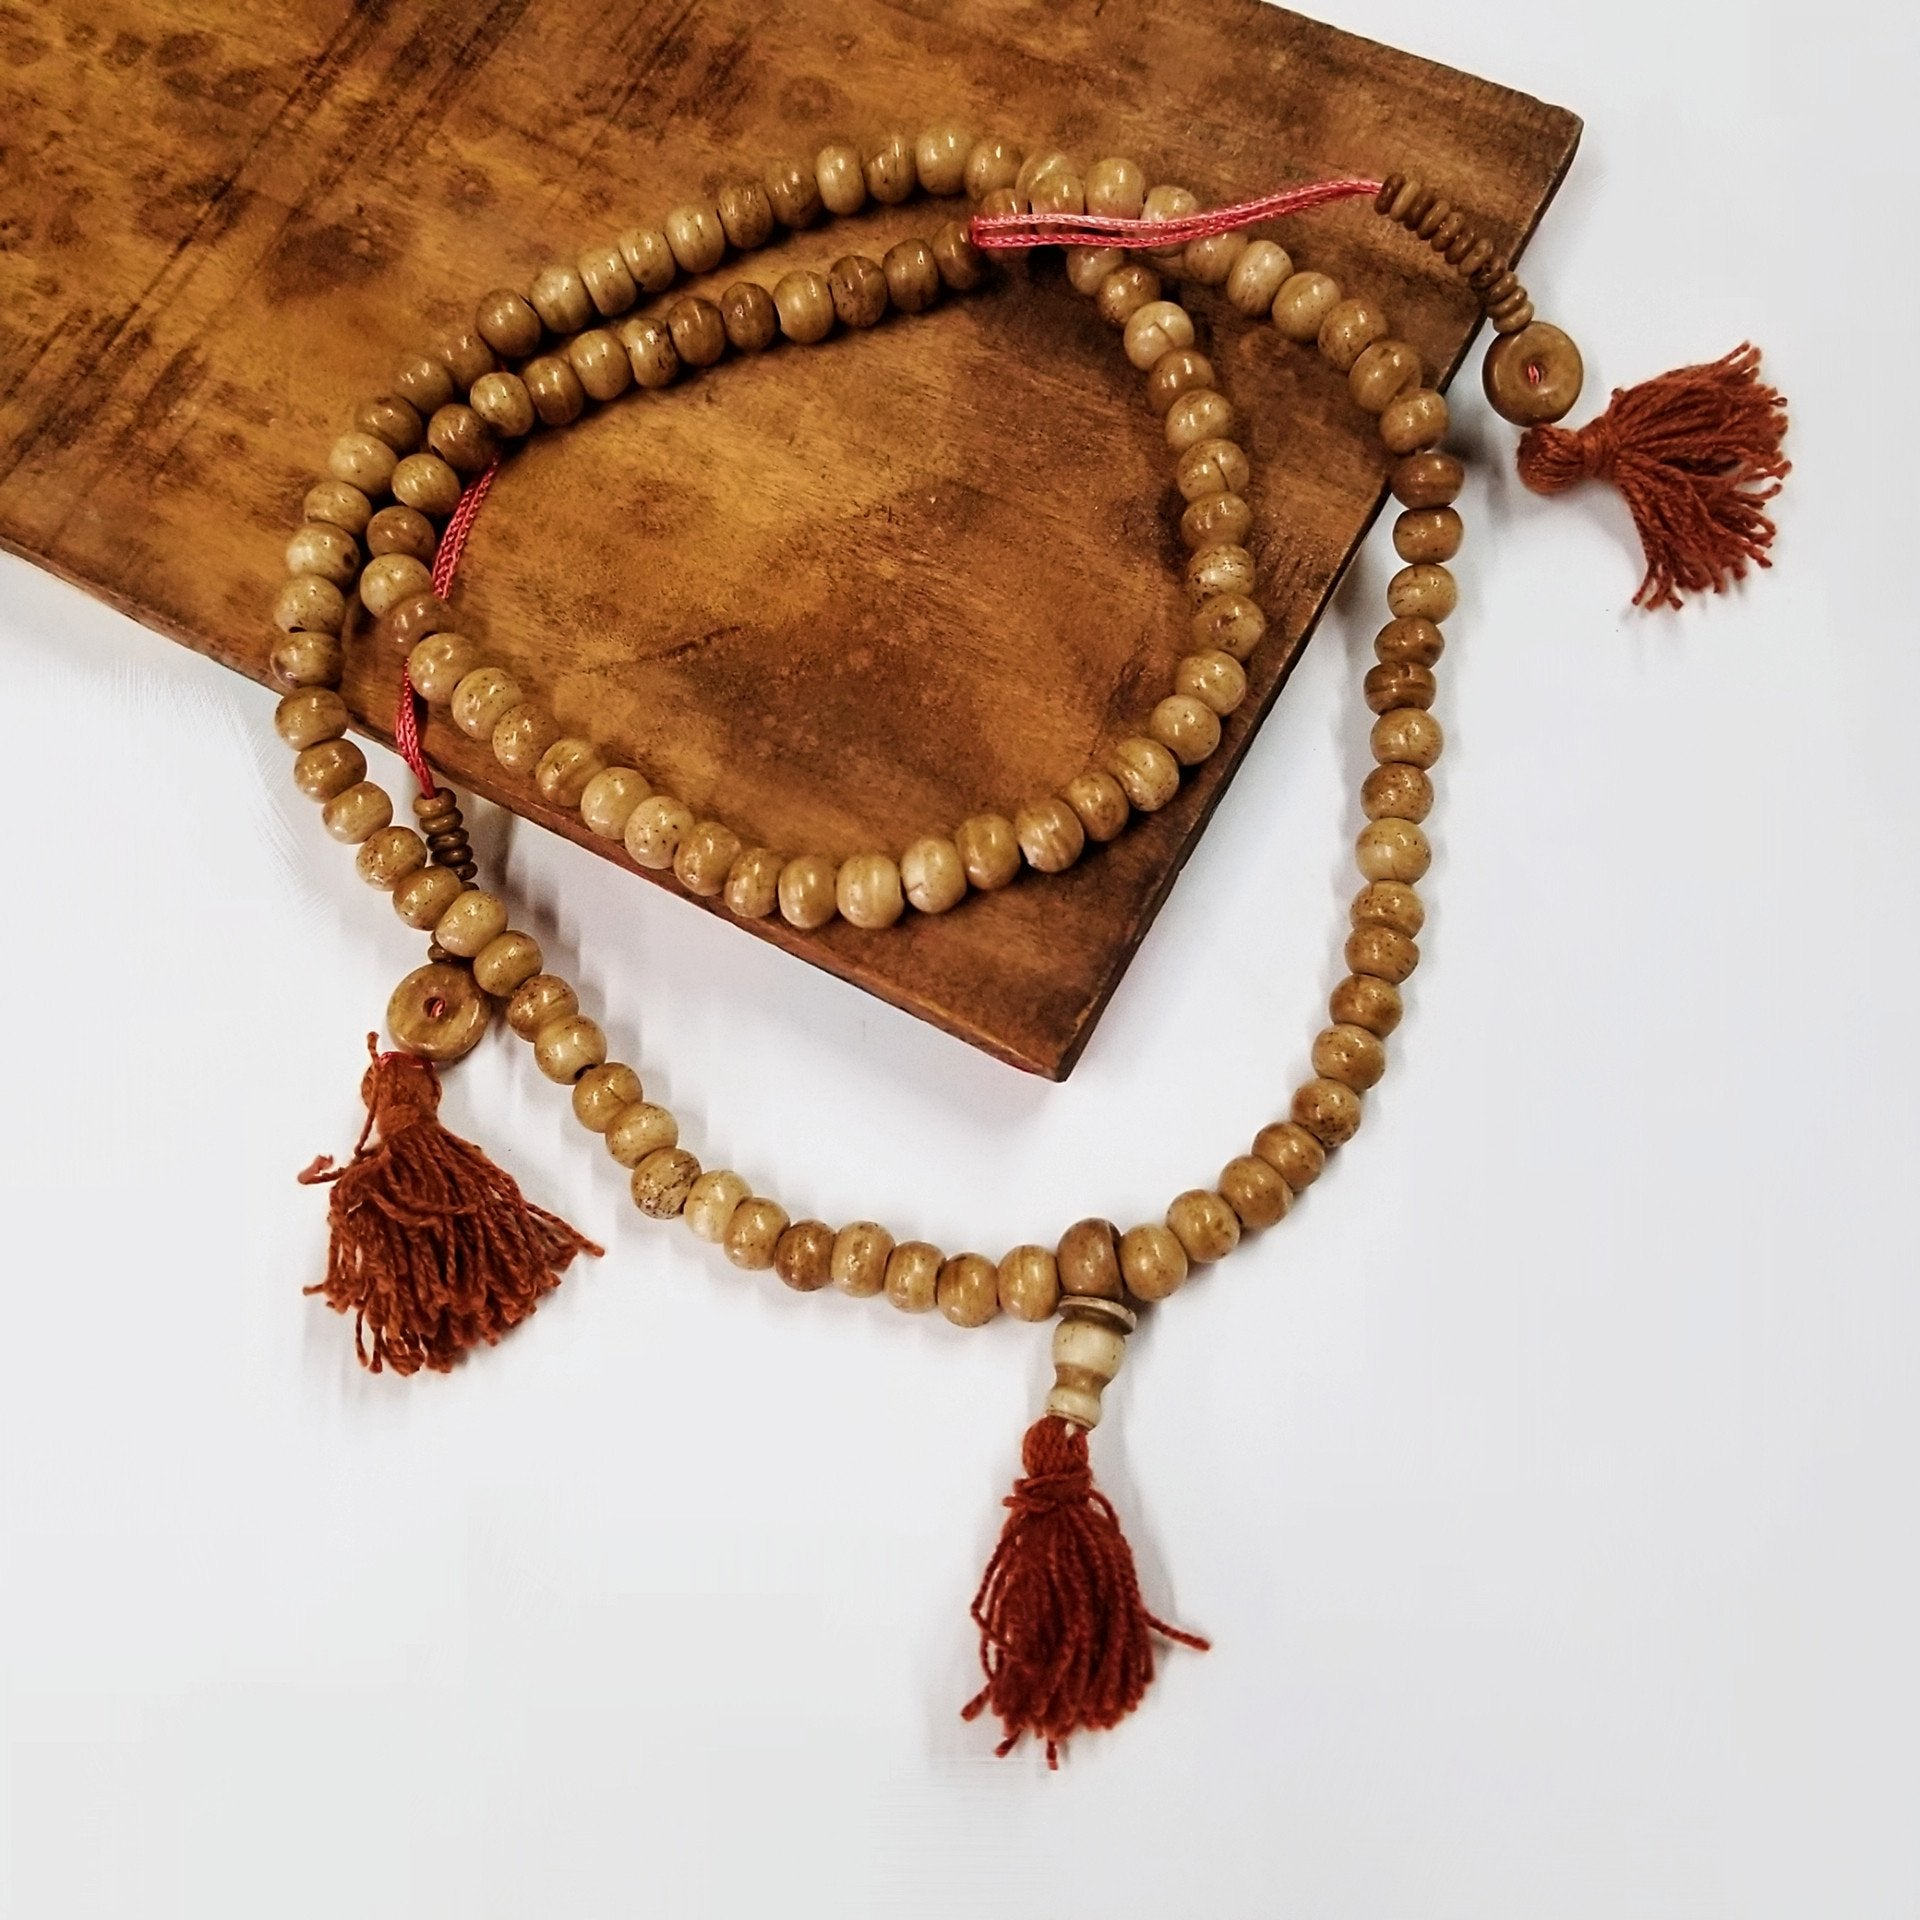 Yaknyeti  Accessories | Mala | Prayer Mala Bead With Counters